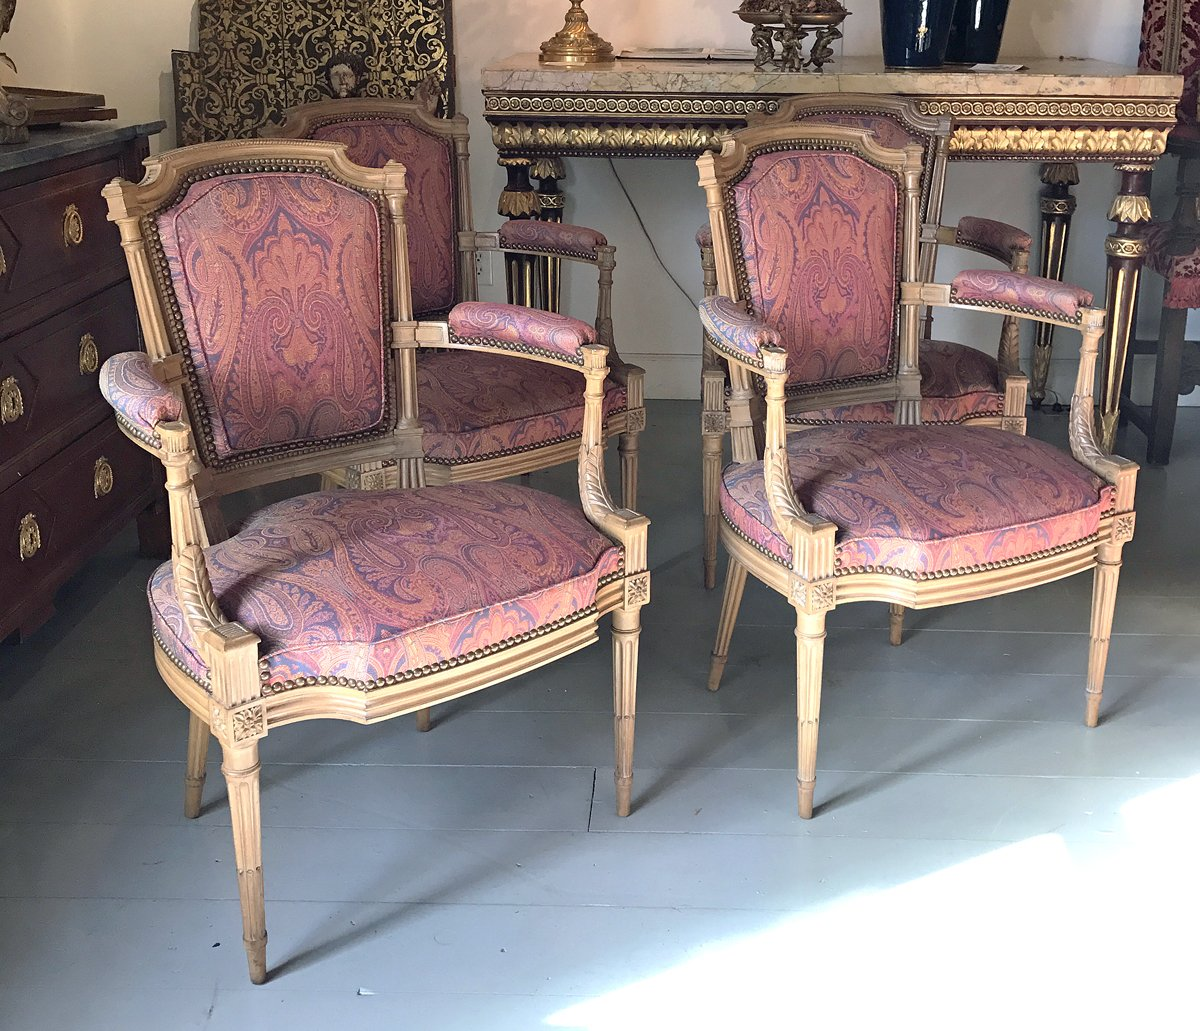 A FINE SET OF FOUR LOUIS XVI STYLE BEECHWOOD ARMCHAIRS IN THE MANNER OF GEORGE JACOB 19th Century